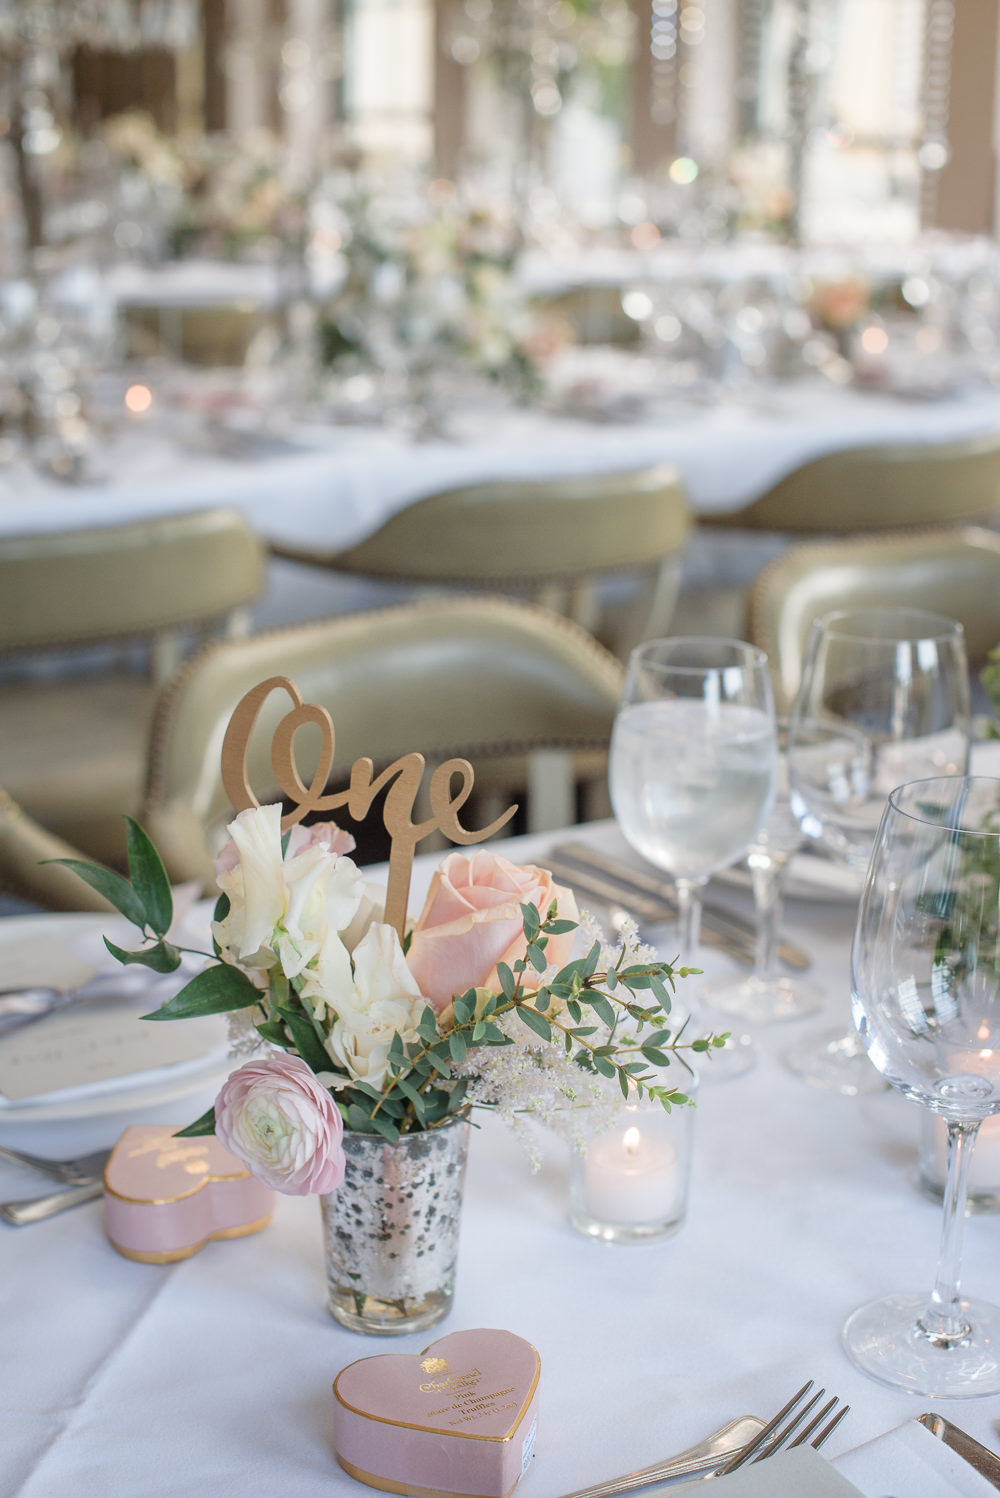 Table Number Laser Cut Wooden Calligraphy Peach Blush Rose Babington House Wedding Ria Mishaal Photography